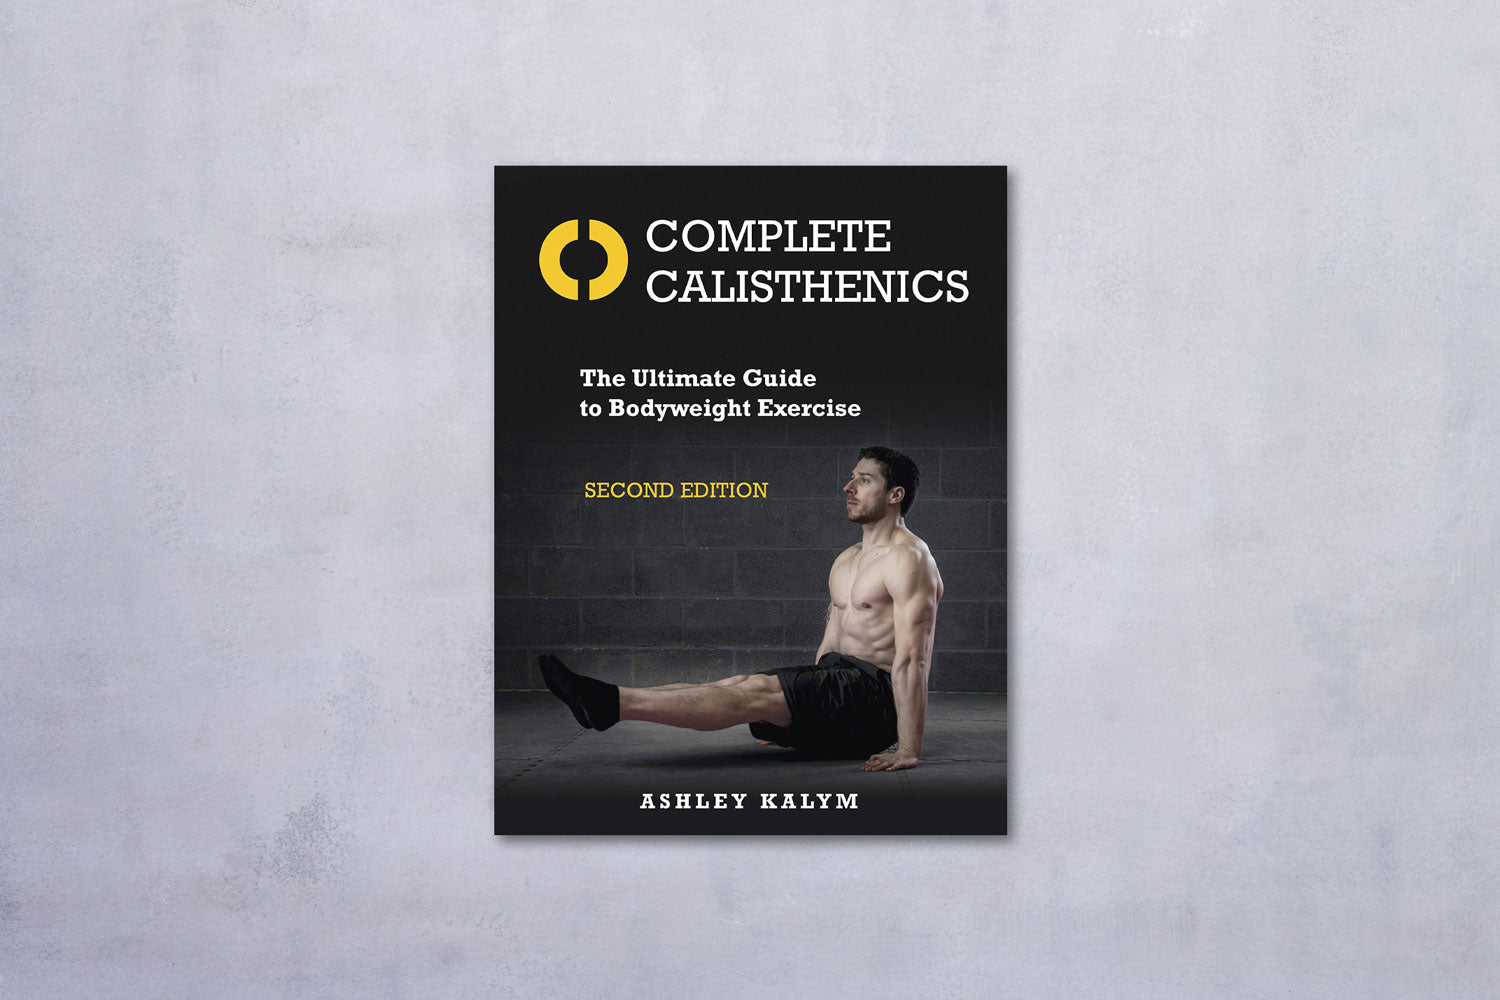 Complete Calisthenics 2 by Ashley Kaylm book cover